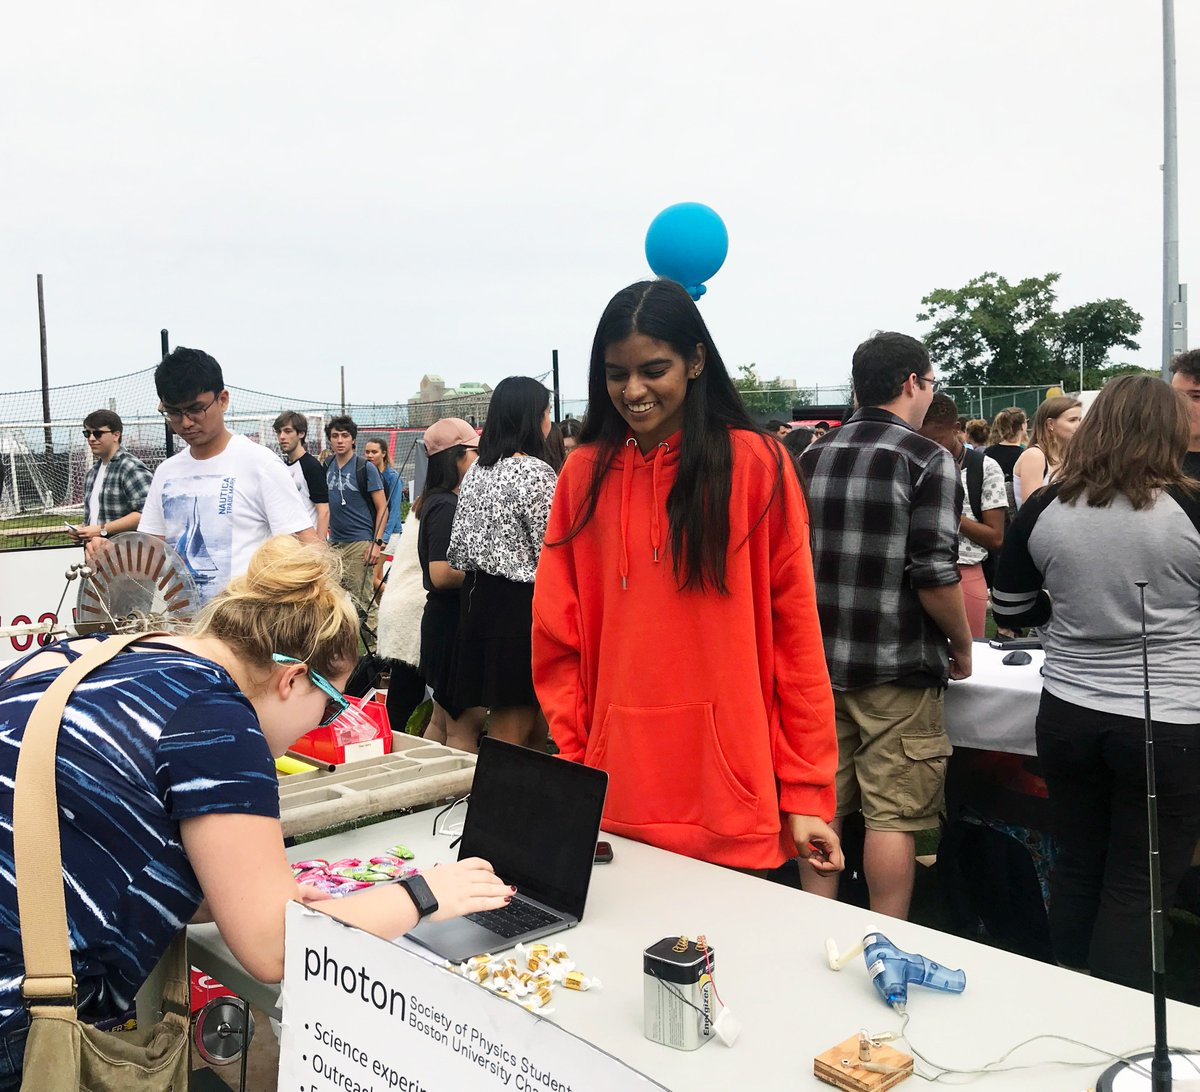 What a great day at Splash last weekend! We're so excited to have met so many new people who are interested in Photon! Hope to see you all at our meeting this Thursday ⚛️ https://t.co/g0aXzTHoDv